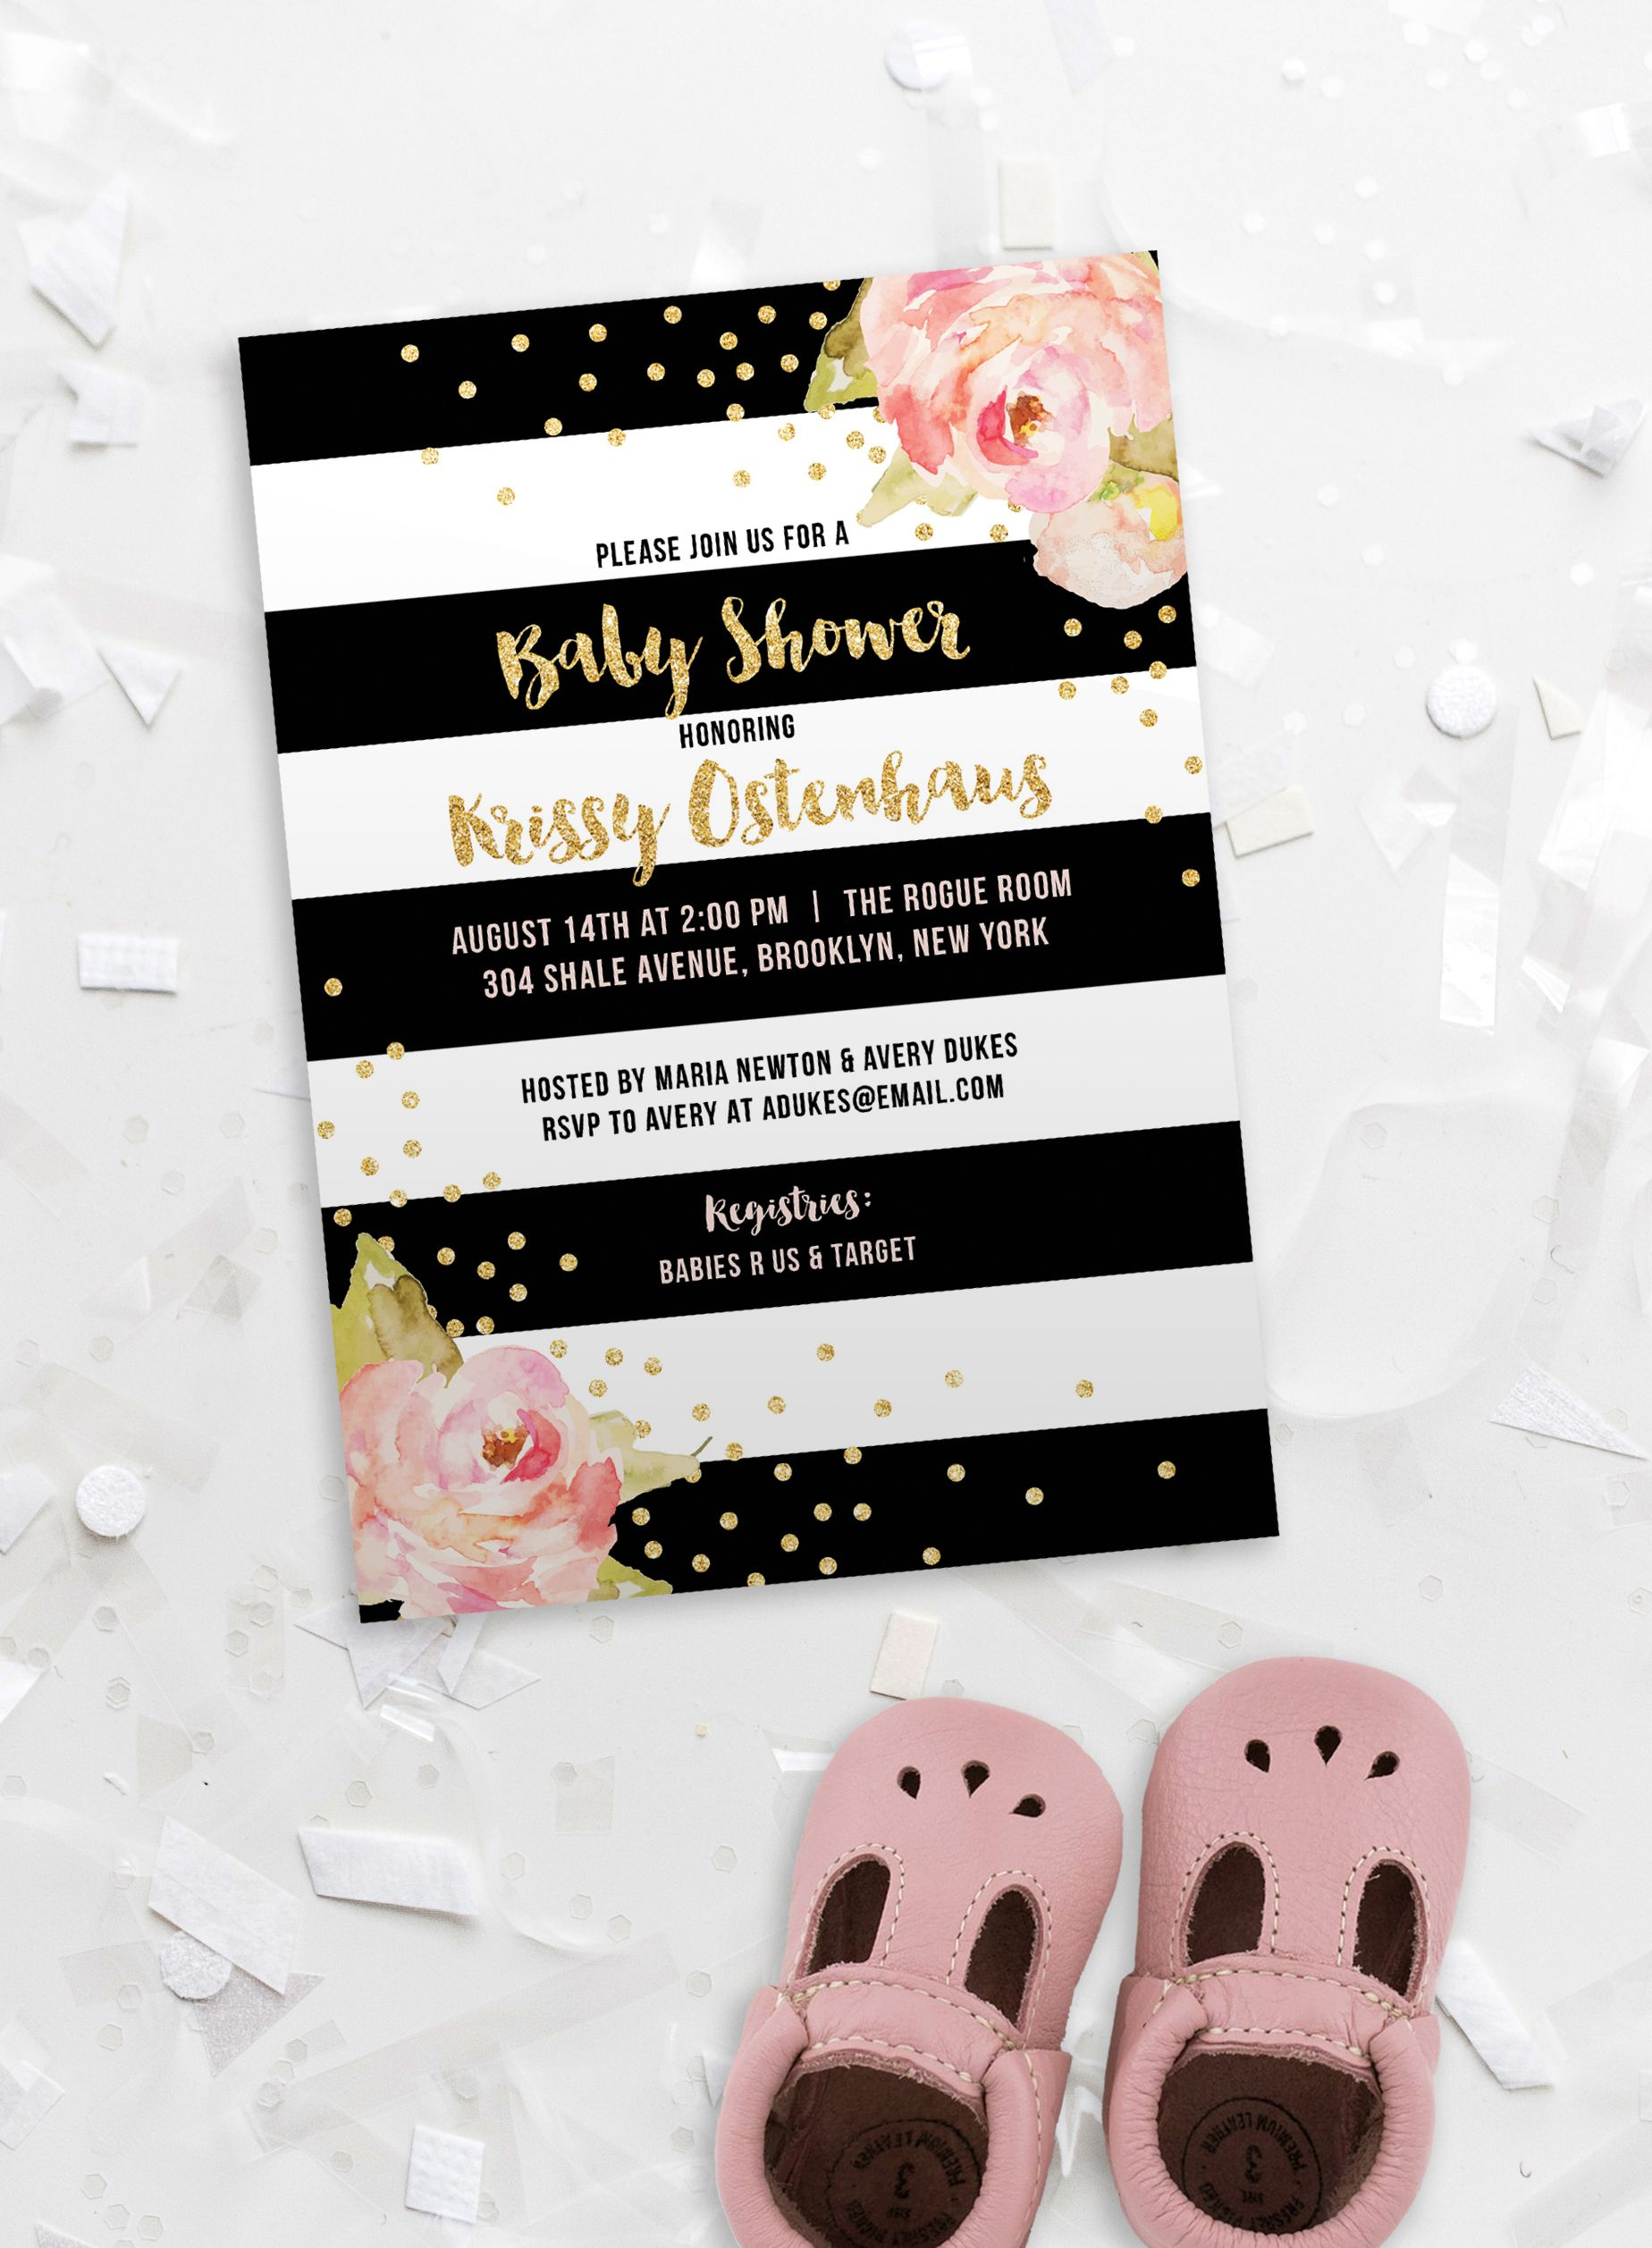 47afcbf70 Black and Pink Baby Shower Invitation in black and white stripes with blush  pink watercolor peonies, gold glitter confetti dot sprinkle, and gold  glitter ...